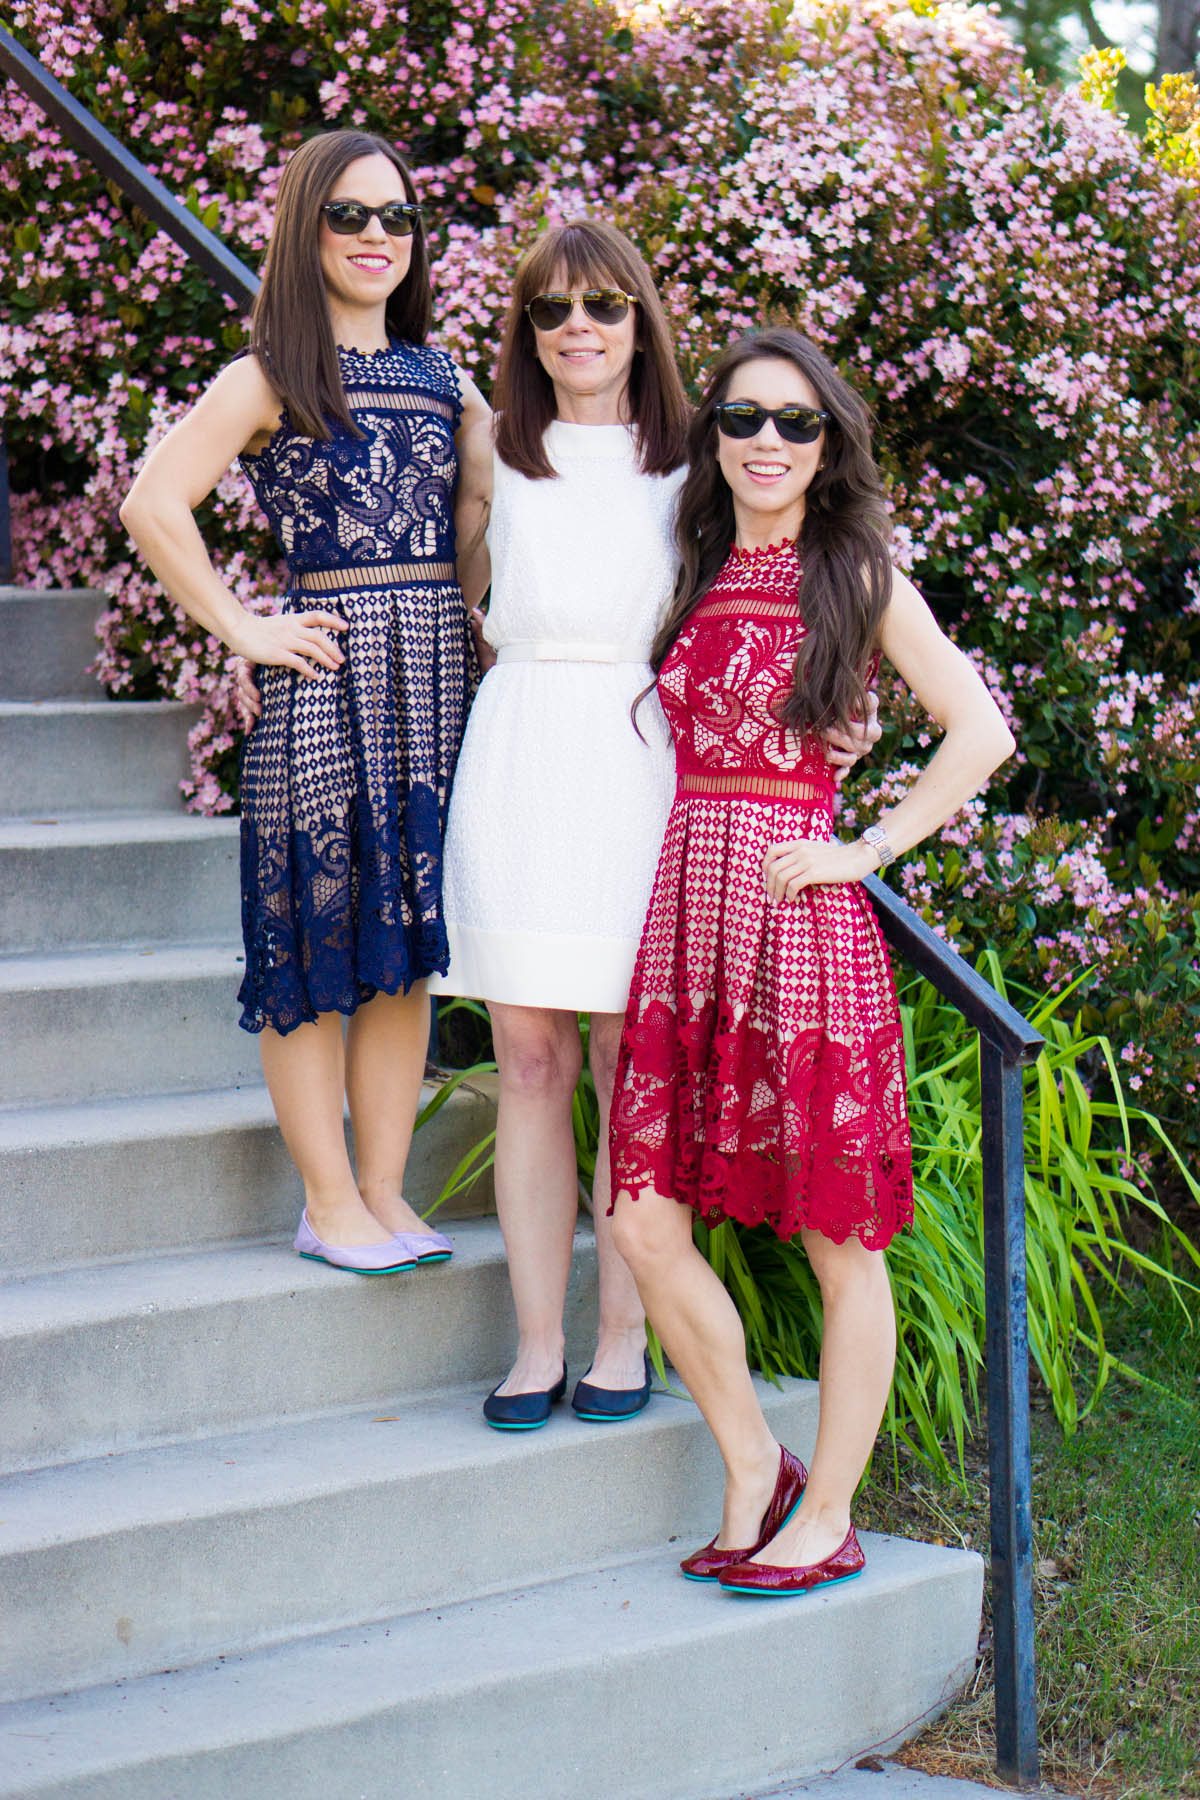 Tieks Mother's Day Gift | Best Mother's Day Gift Ideas | Say Thanks to Mom | Give Thanks to Mom | Tieks by Gavrieli Ballet Flats Review | Best flats at any age